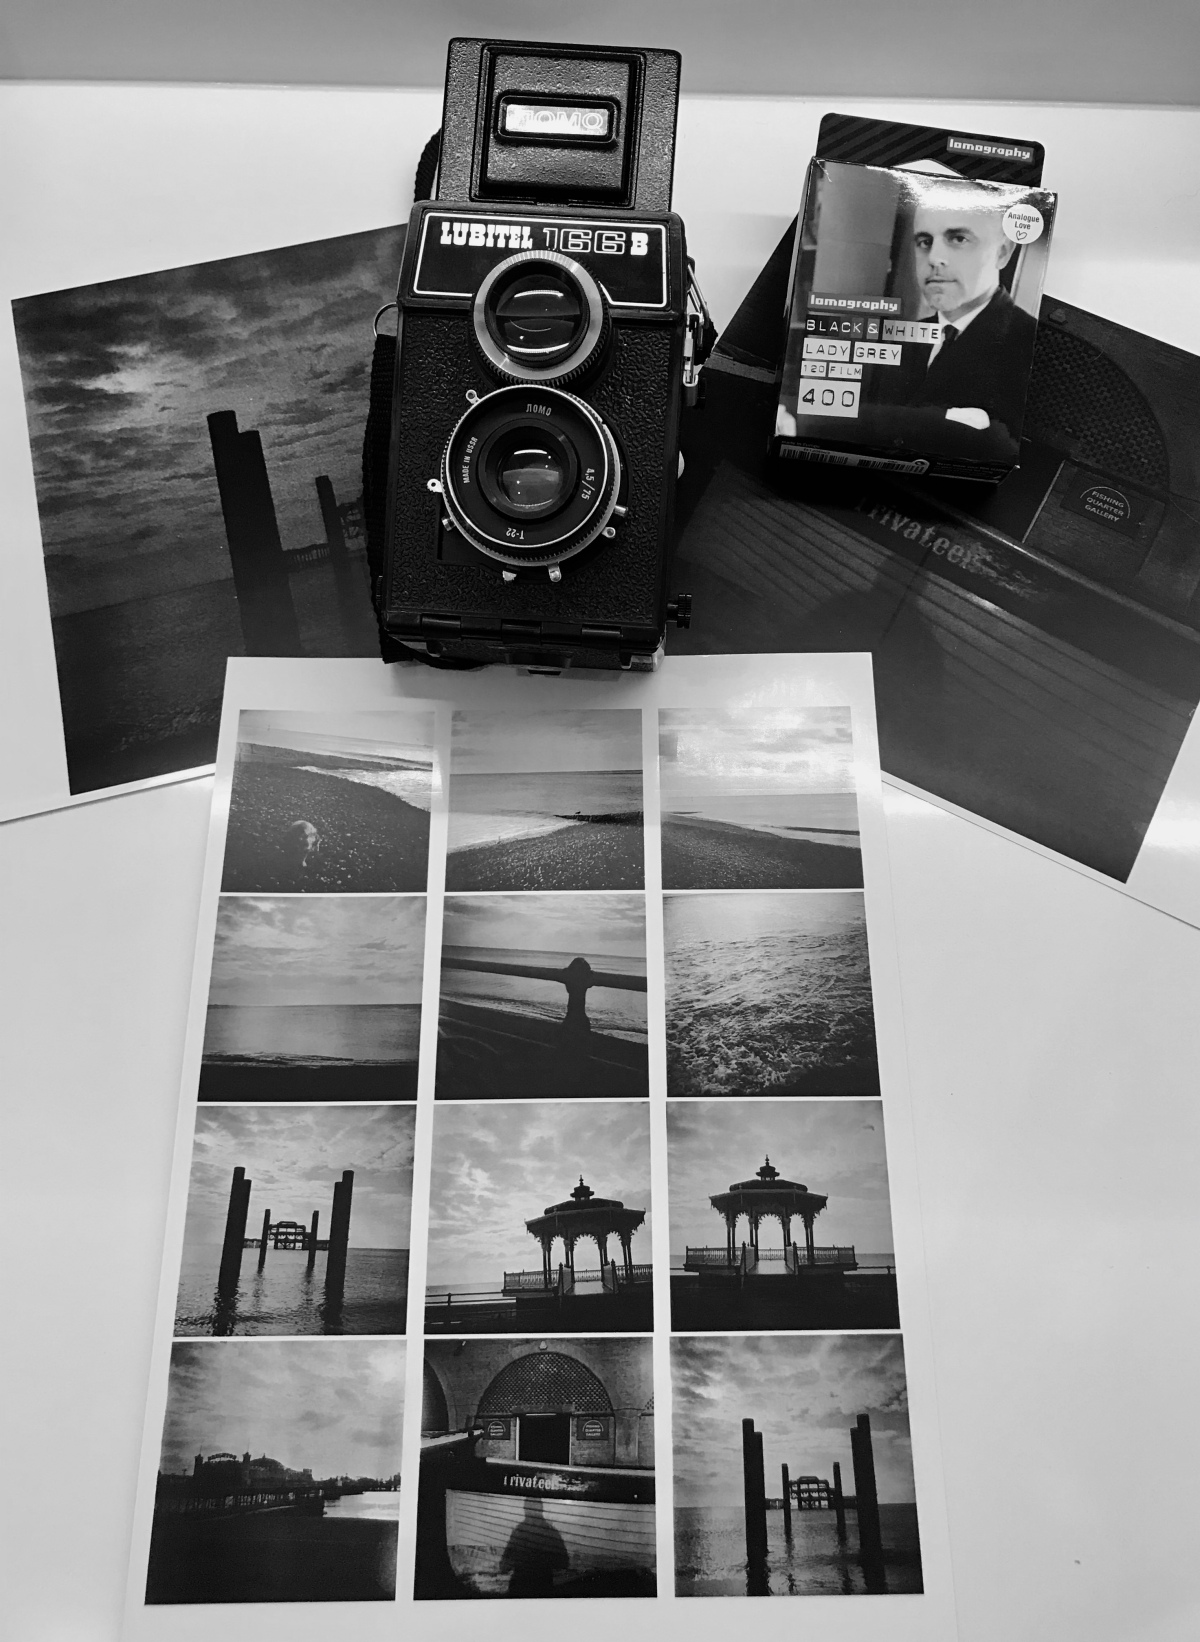 Shooting black and white film with the Lubitel 166B